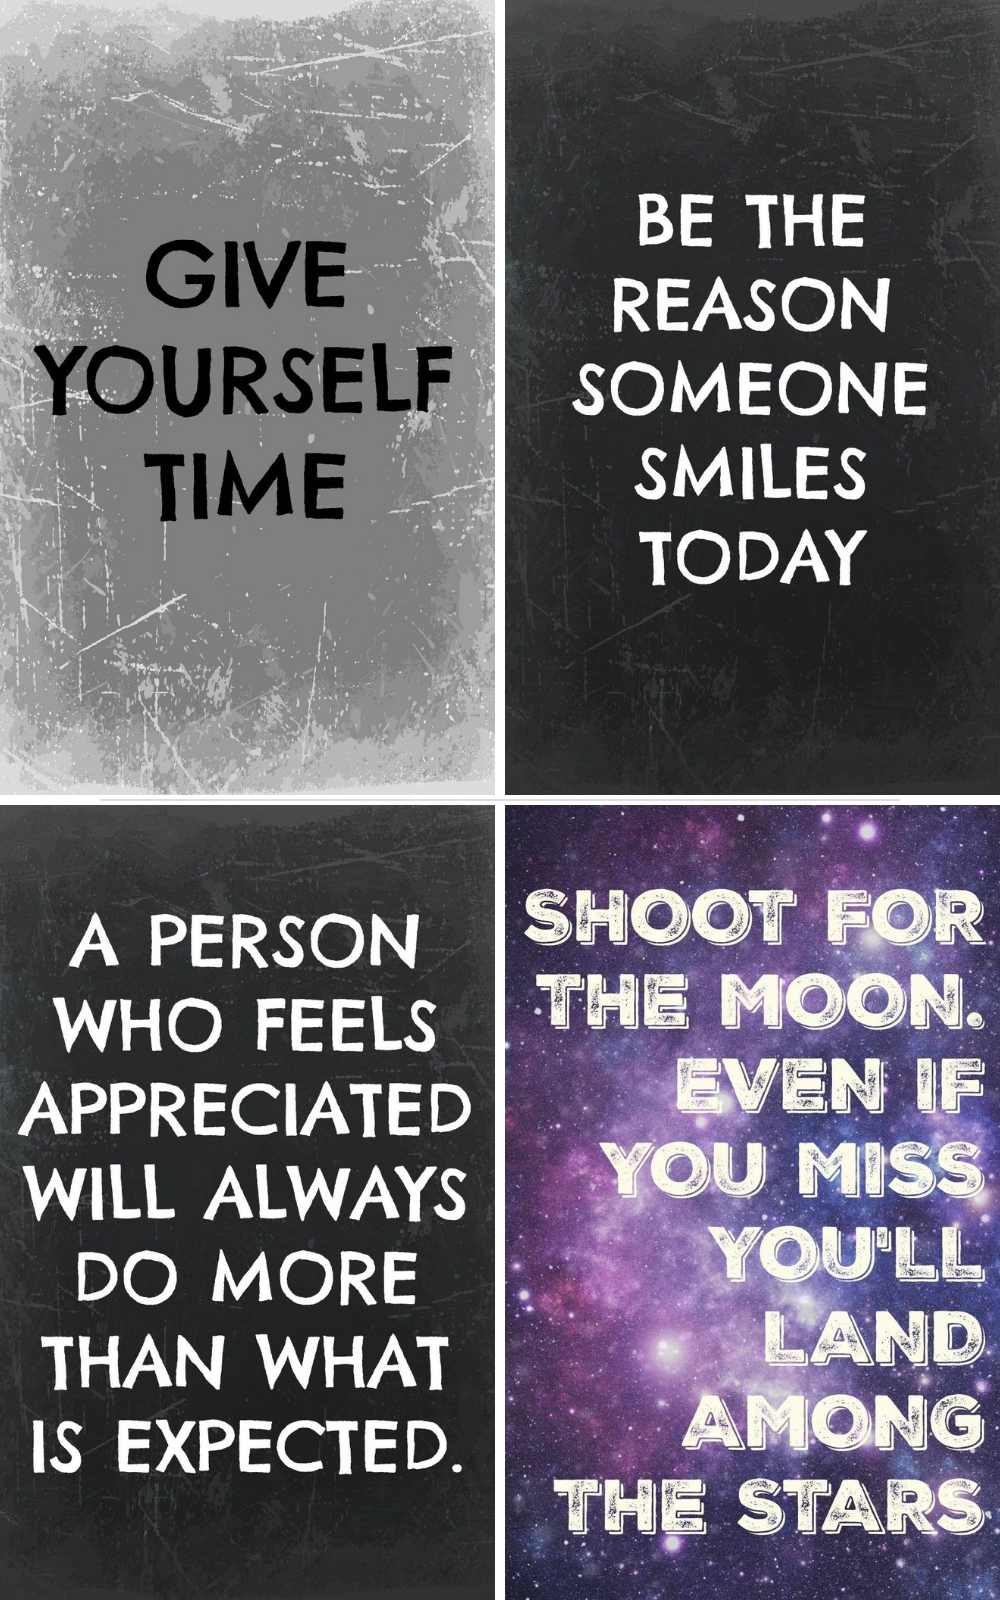 Best inspirational quote boards #quotes #inspiration